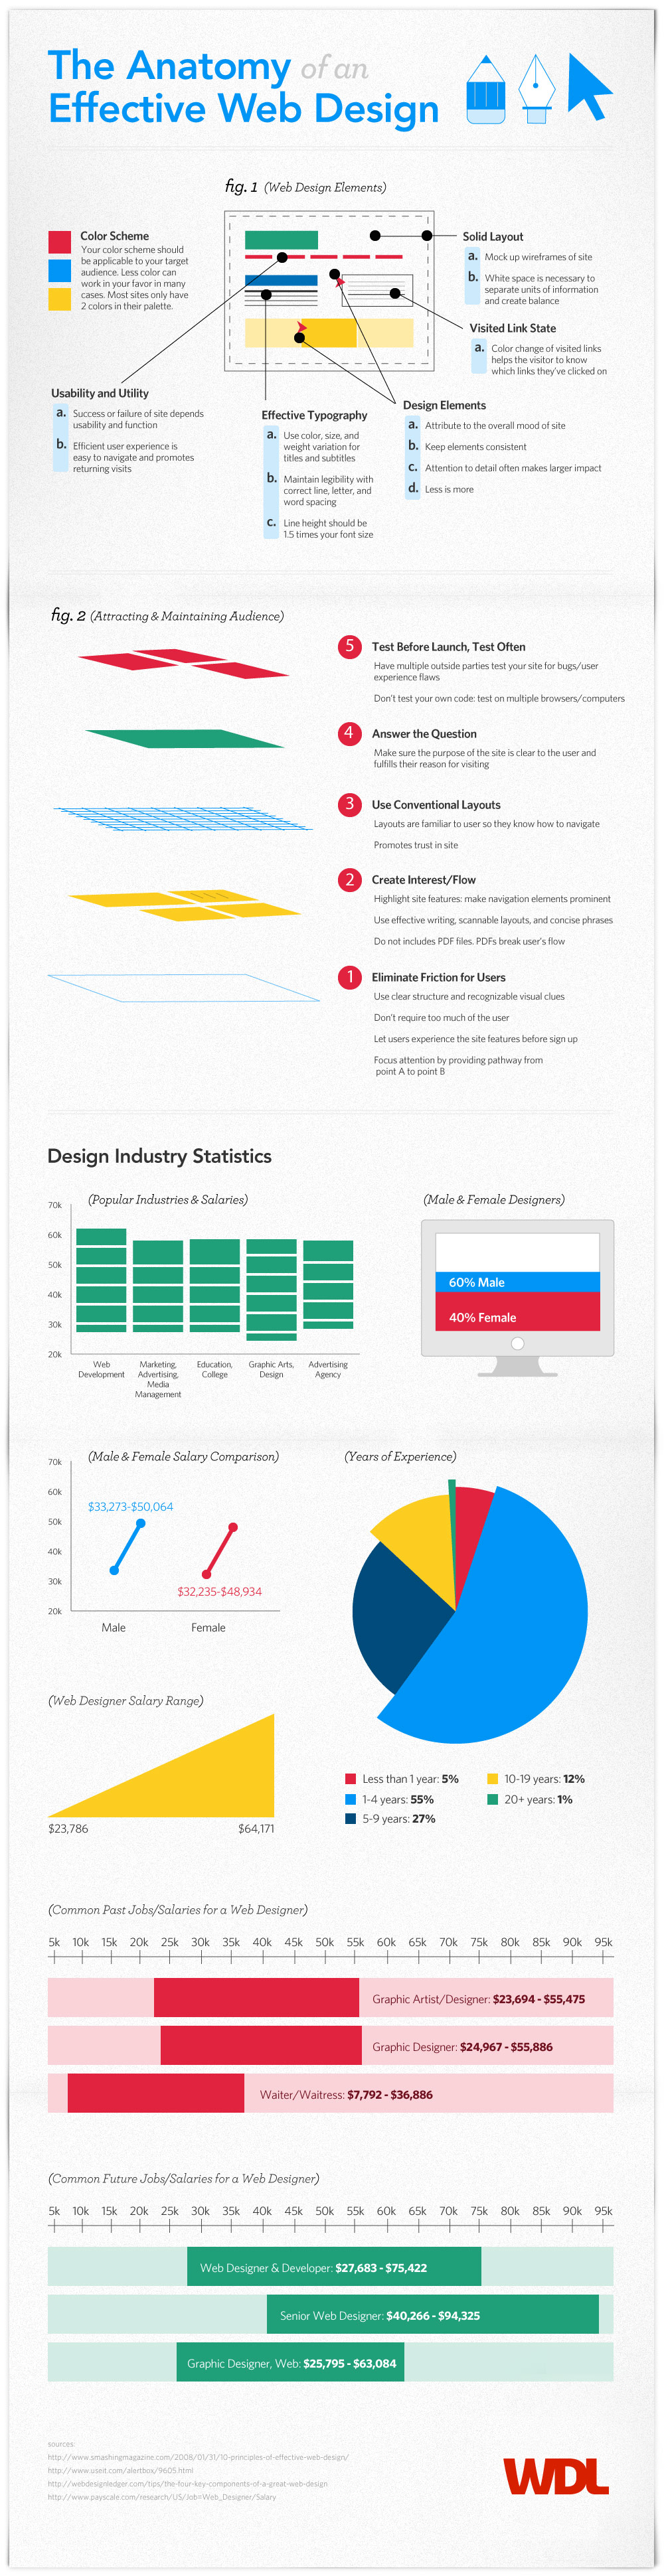 The Anatomy Of An Effective Web Design [Infographic]